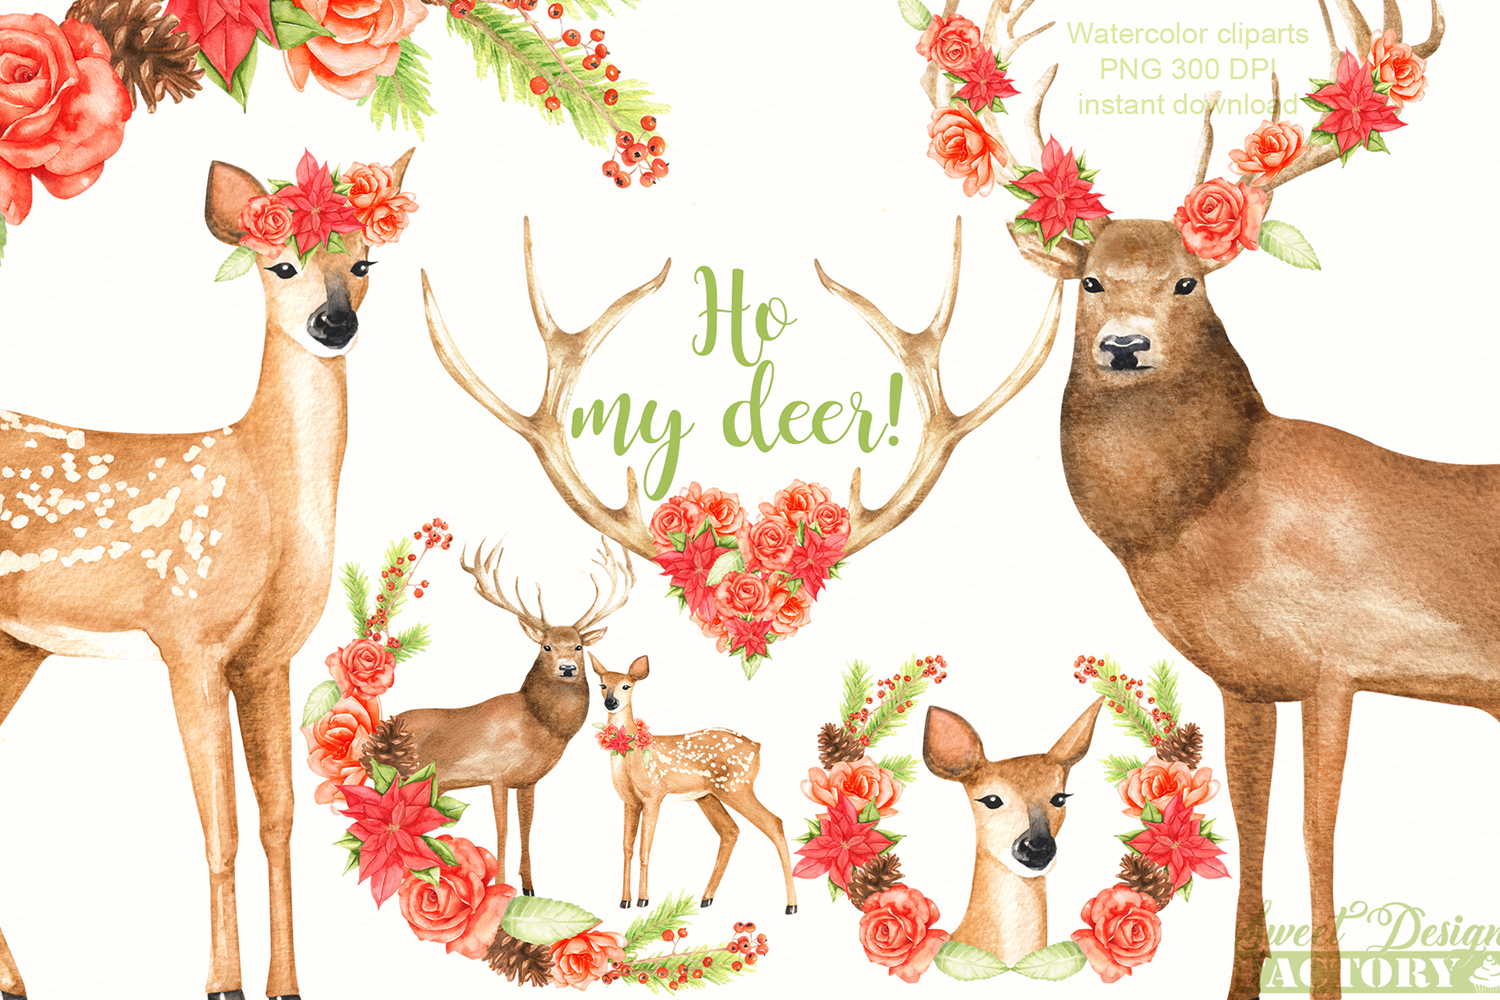 Deers and flowers cliparts example image 1